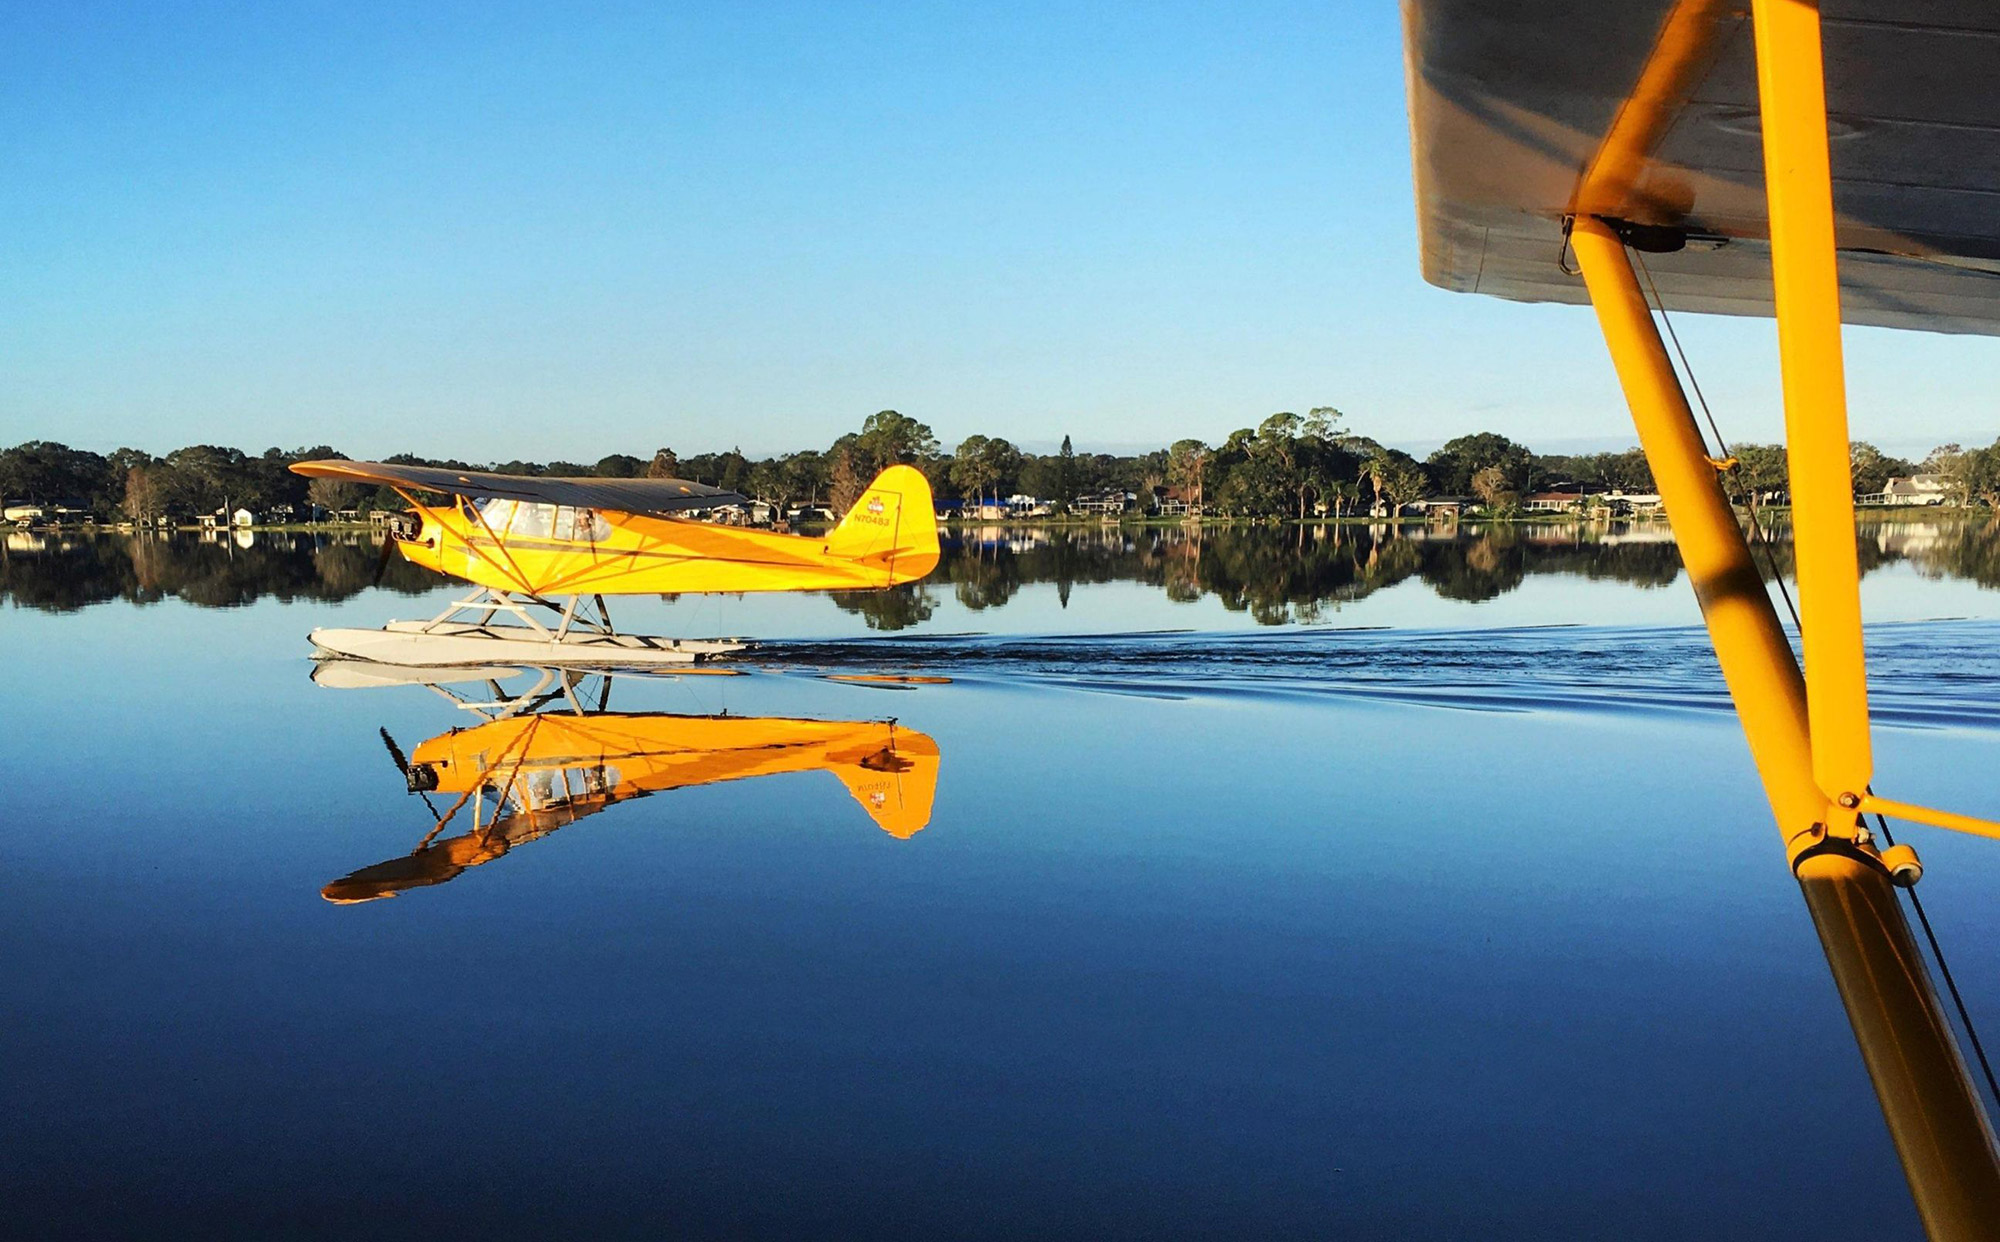 yellow seaplane taking off in lake at Jack Brown's Seaplane Base in Winter Haven, FL